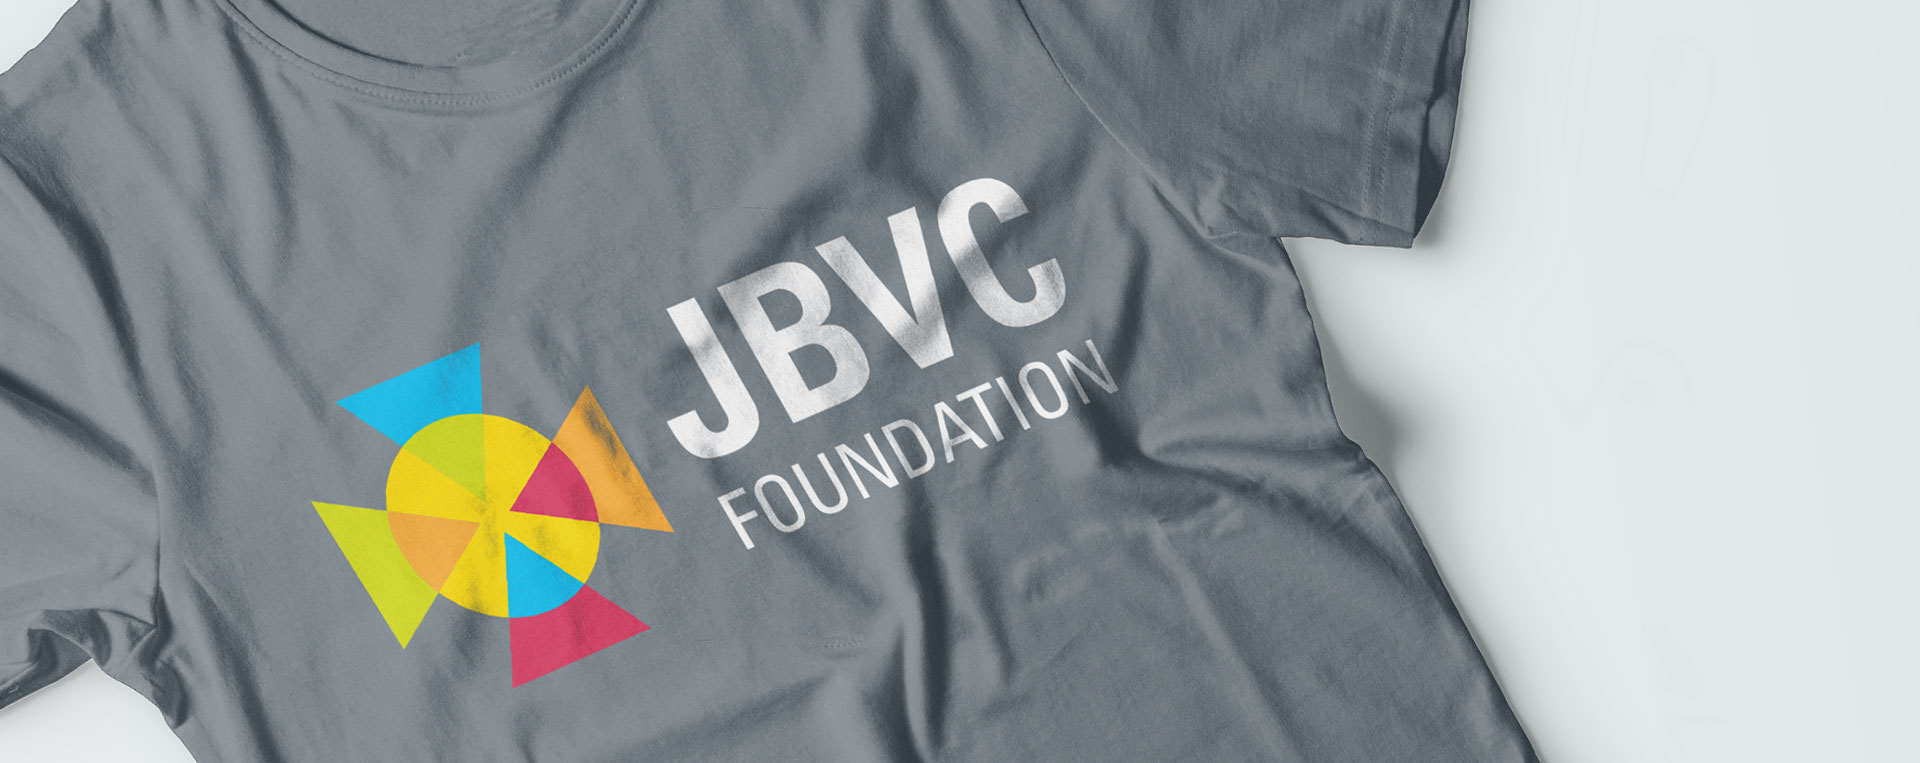 JBVC Foundation